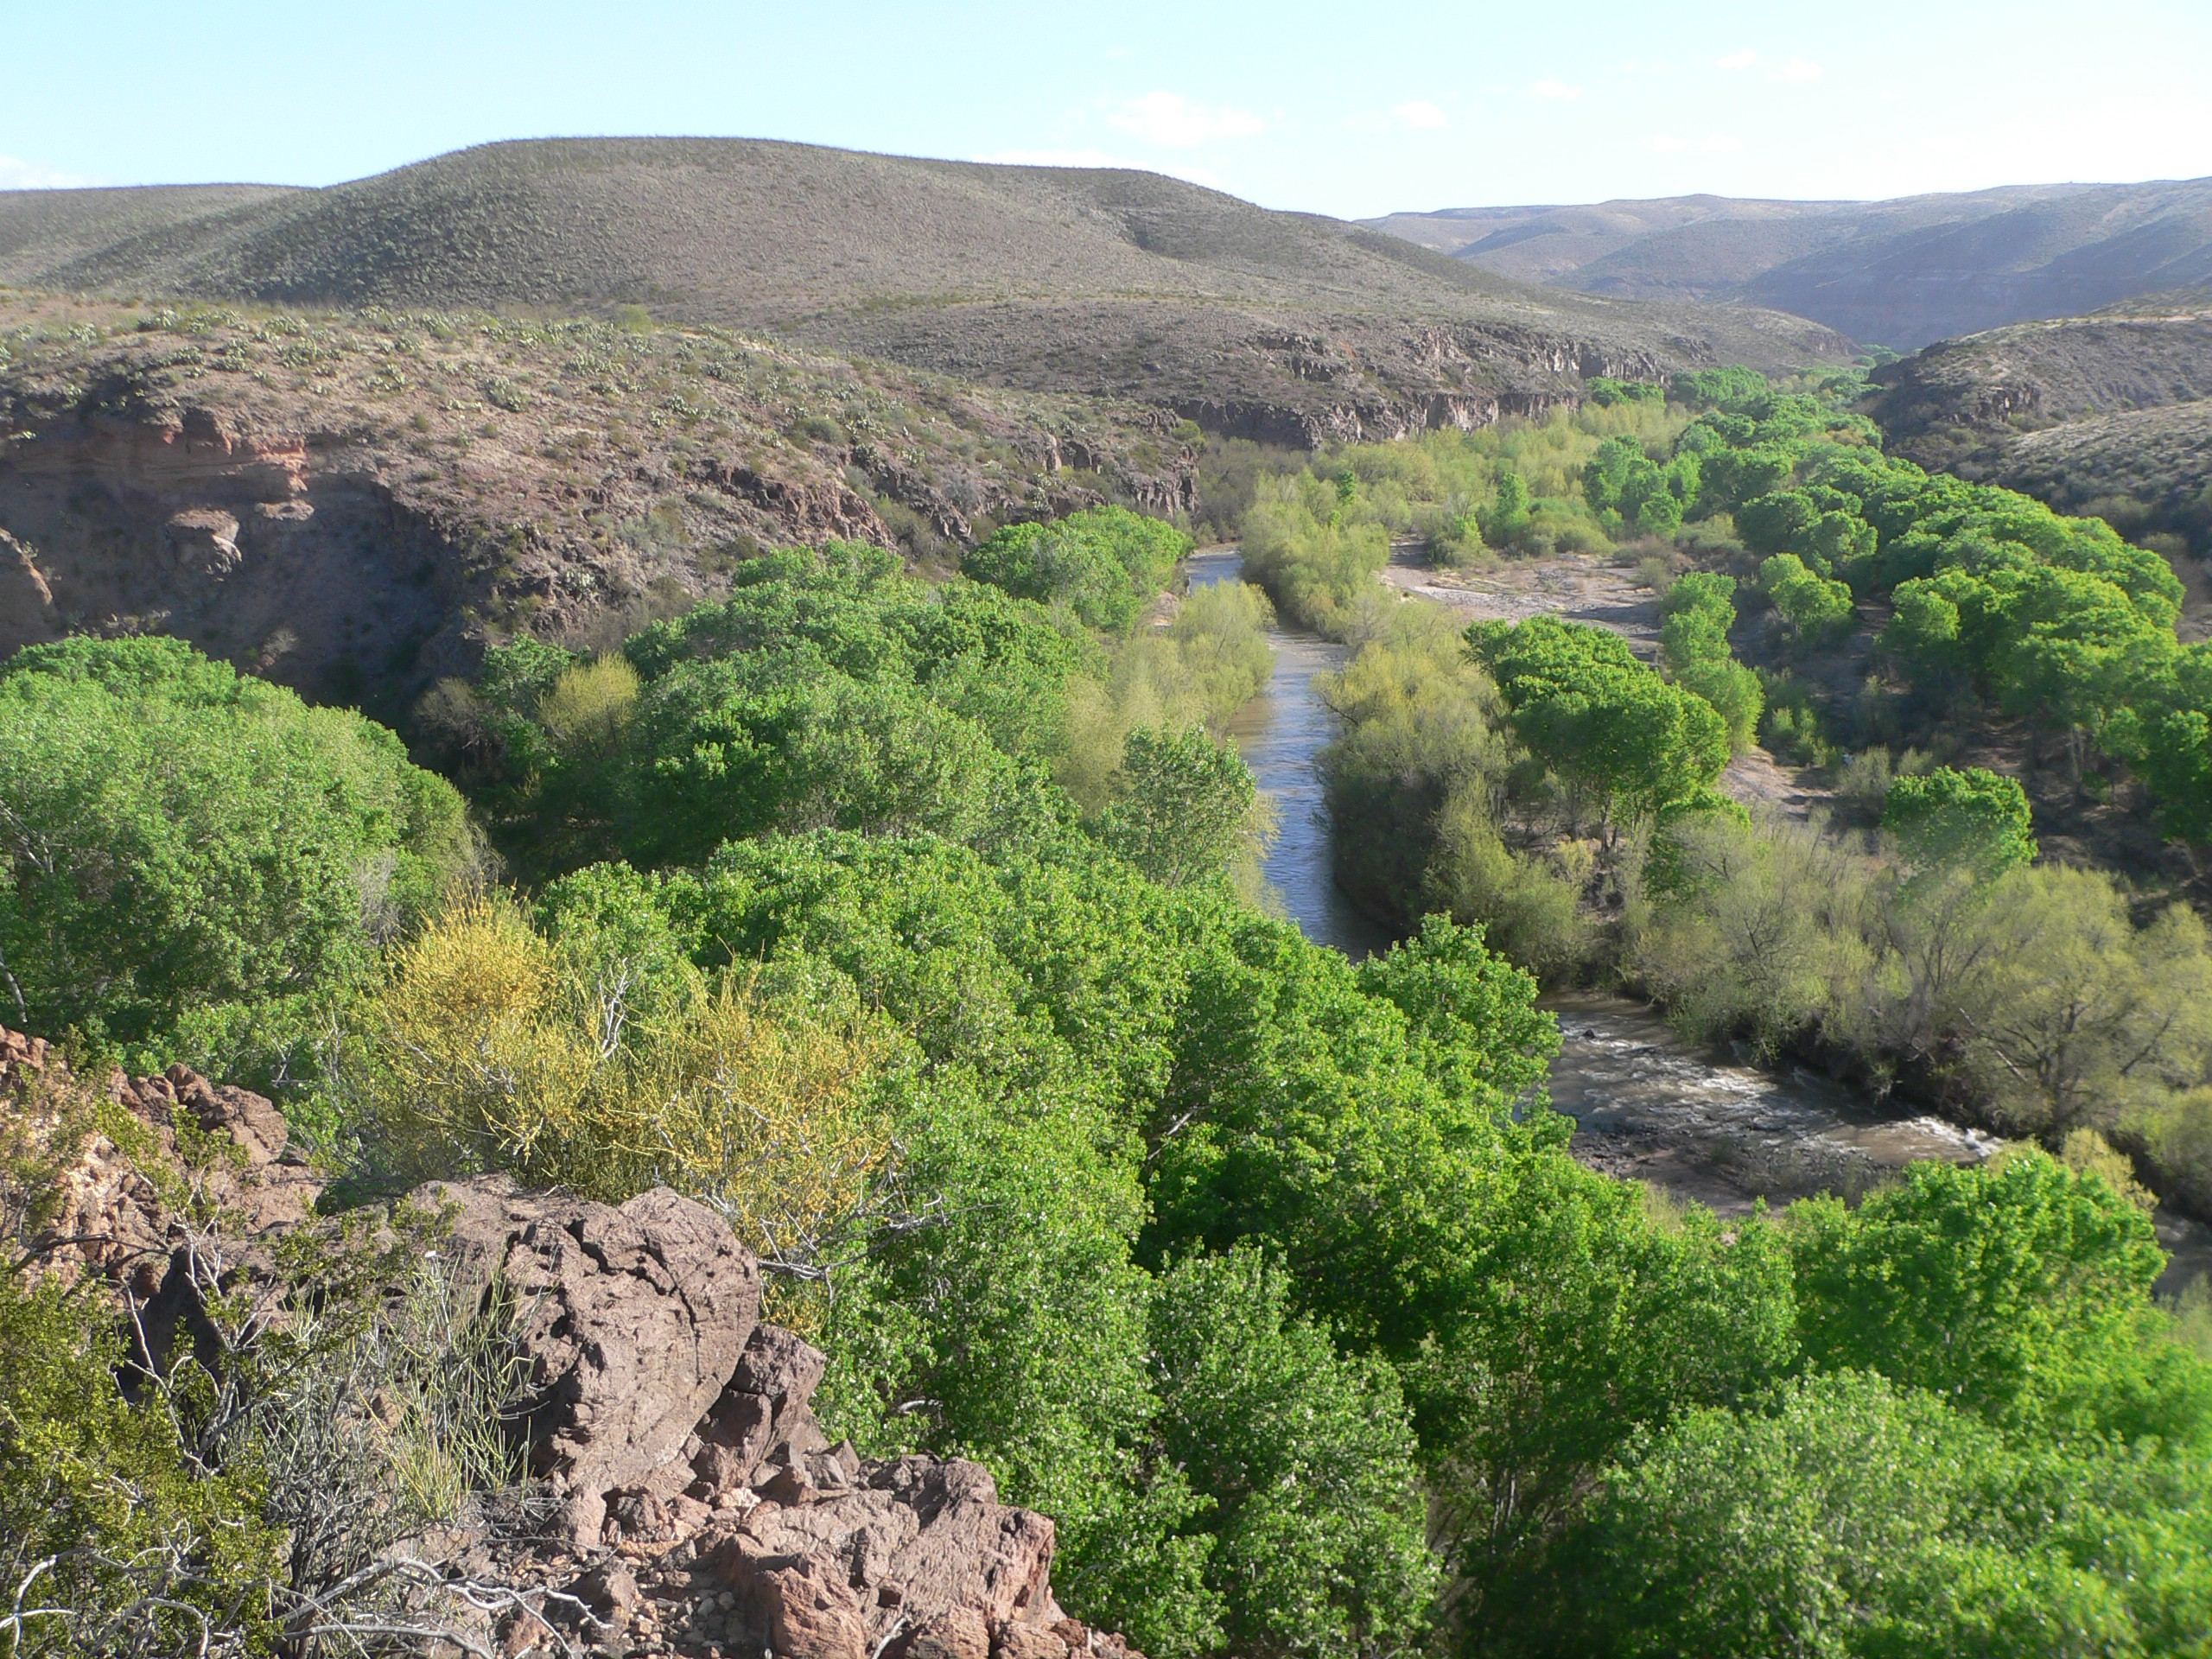 Confluence of Bonita Creek and Gila River in Gila Box Riparian National Conservation Area, in Graham County, Arizona; seen from the vicinity of the Kearny campsite monument. The Gila flows toward the camera, center and left of center; Bonita Creek flows left to right, through the canyon whose far wall is visible behind trees at the right edge of the photo.